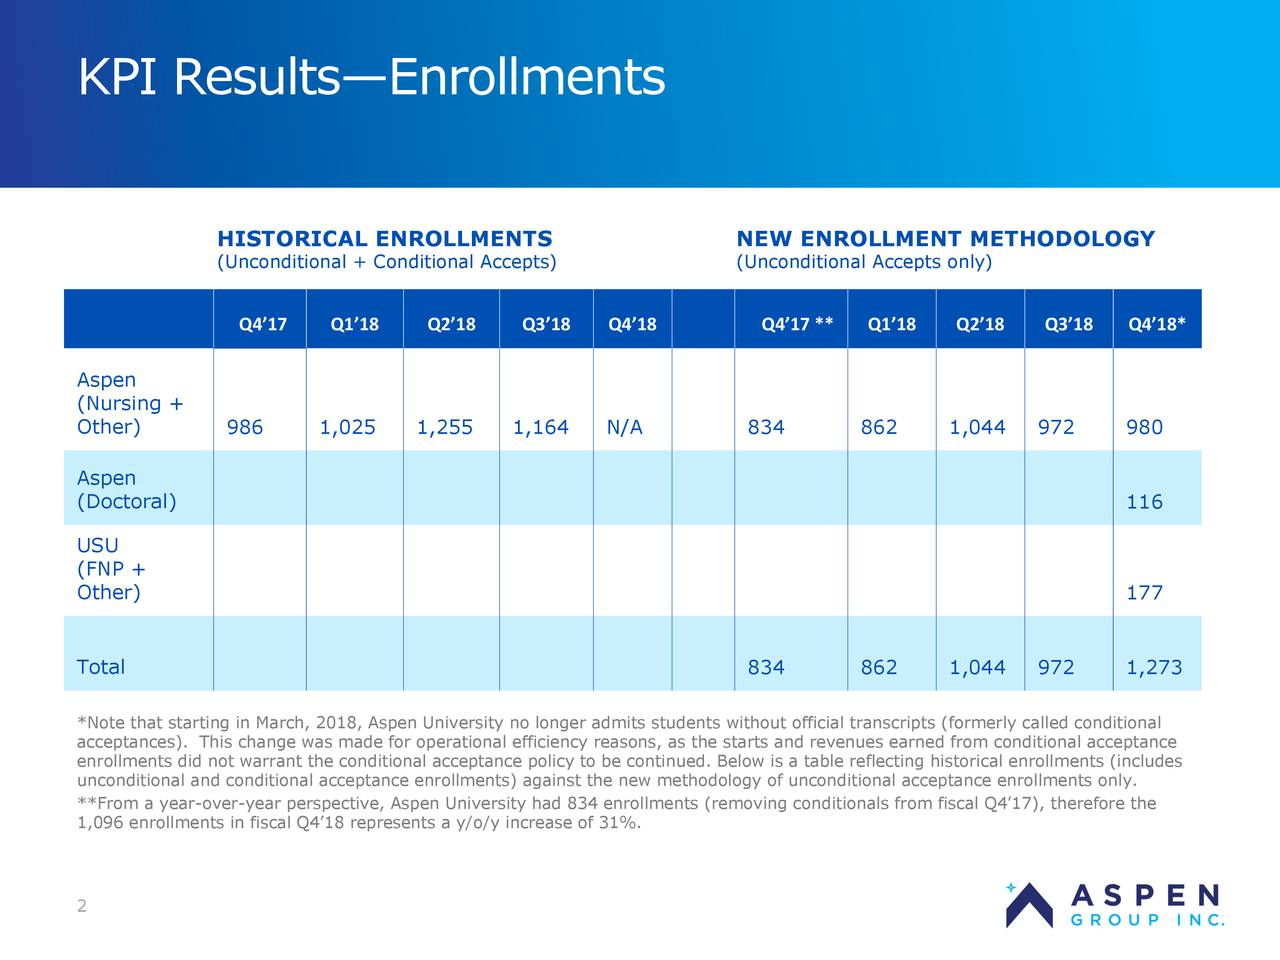 HISTORICAL ENROLLMENTS NEW ENROLLMENT METHODOLOGY (Unconditional + Conditional Accepts) (Unconditional Accepts only) Q4'17 Q1'18 Q2'18 Q3'18 Q4'18 Q4'17 ** Q1'18 Q2'18 Q3'18 Q4'18* Aspen (Nursing + Other) 986 1,025 1,255 1,164 N/A 834 862 1,044 972 980 Aspen (Doctoral) 116 USU (FNP + Other) 177 Total 834 862 1,044 972 1,273 *Note that starting in March, 2018, Aspen University no longer admits students without officicnditionalipts (formerly calledo acceptances). This change was made for operational efficiency reasons, as the starts and revenuacptanced from conditional c enrollments did not warrant the conditional acceptance policy to be continued. Below is a taents (includes historical enrollm unconditional and conditional acceptance enrollments) against the new methodology of unconditional acceptance enrollments only. **From a year-over-year perspective, Aspen University had 834 enrollments (removing conditionals from fiscal Q4'17), therefore the 1,096 enrollments in fiscal Q4'18 represents a y/o/y increase of 31%. 2